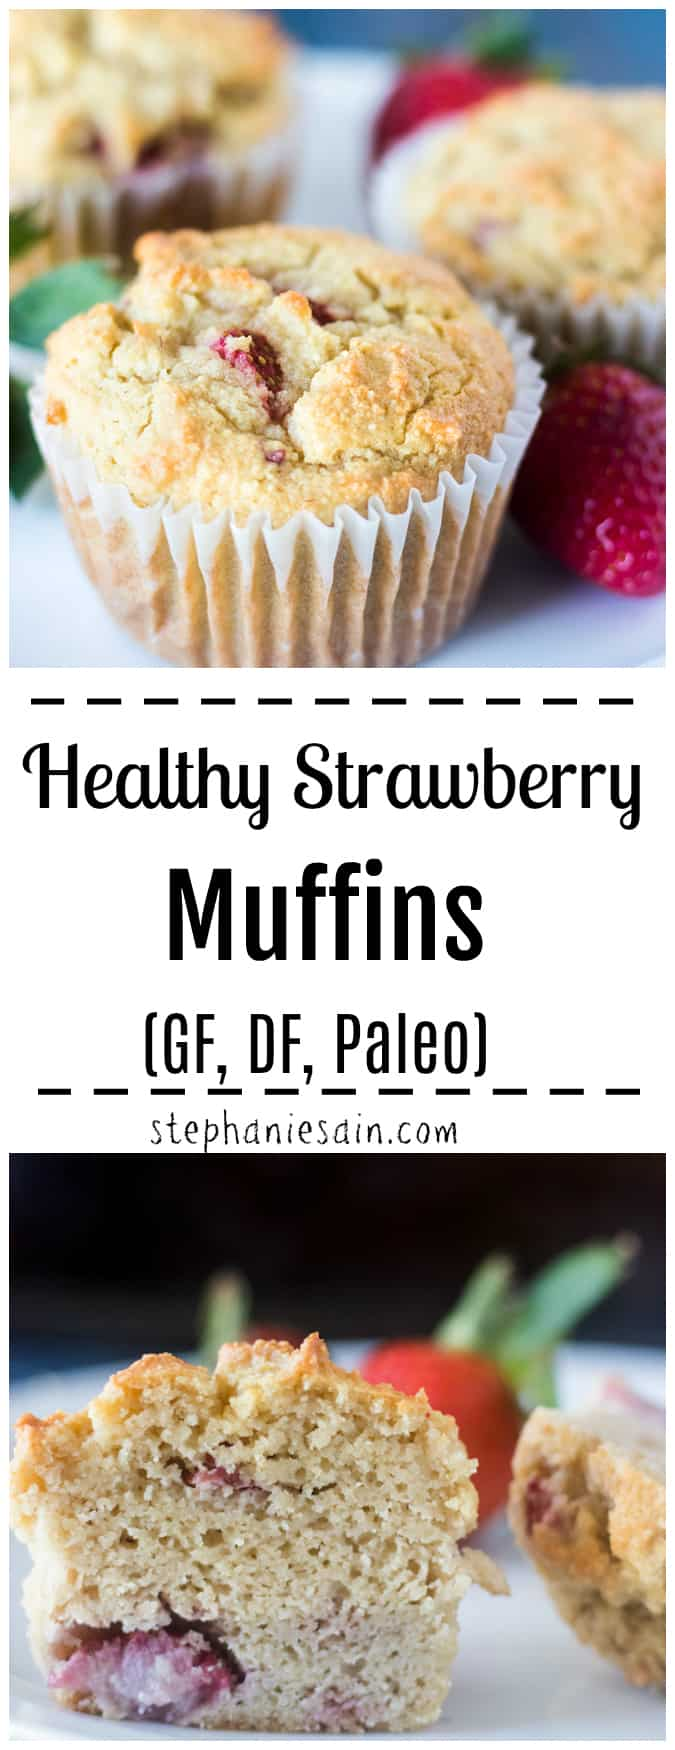 Healthy Strawberry Muffins